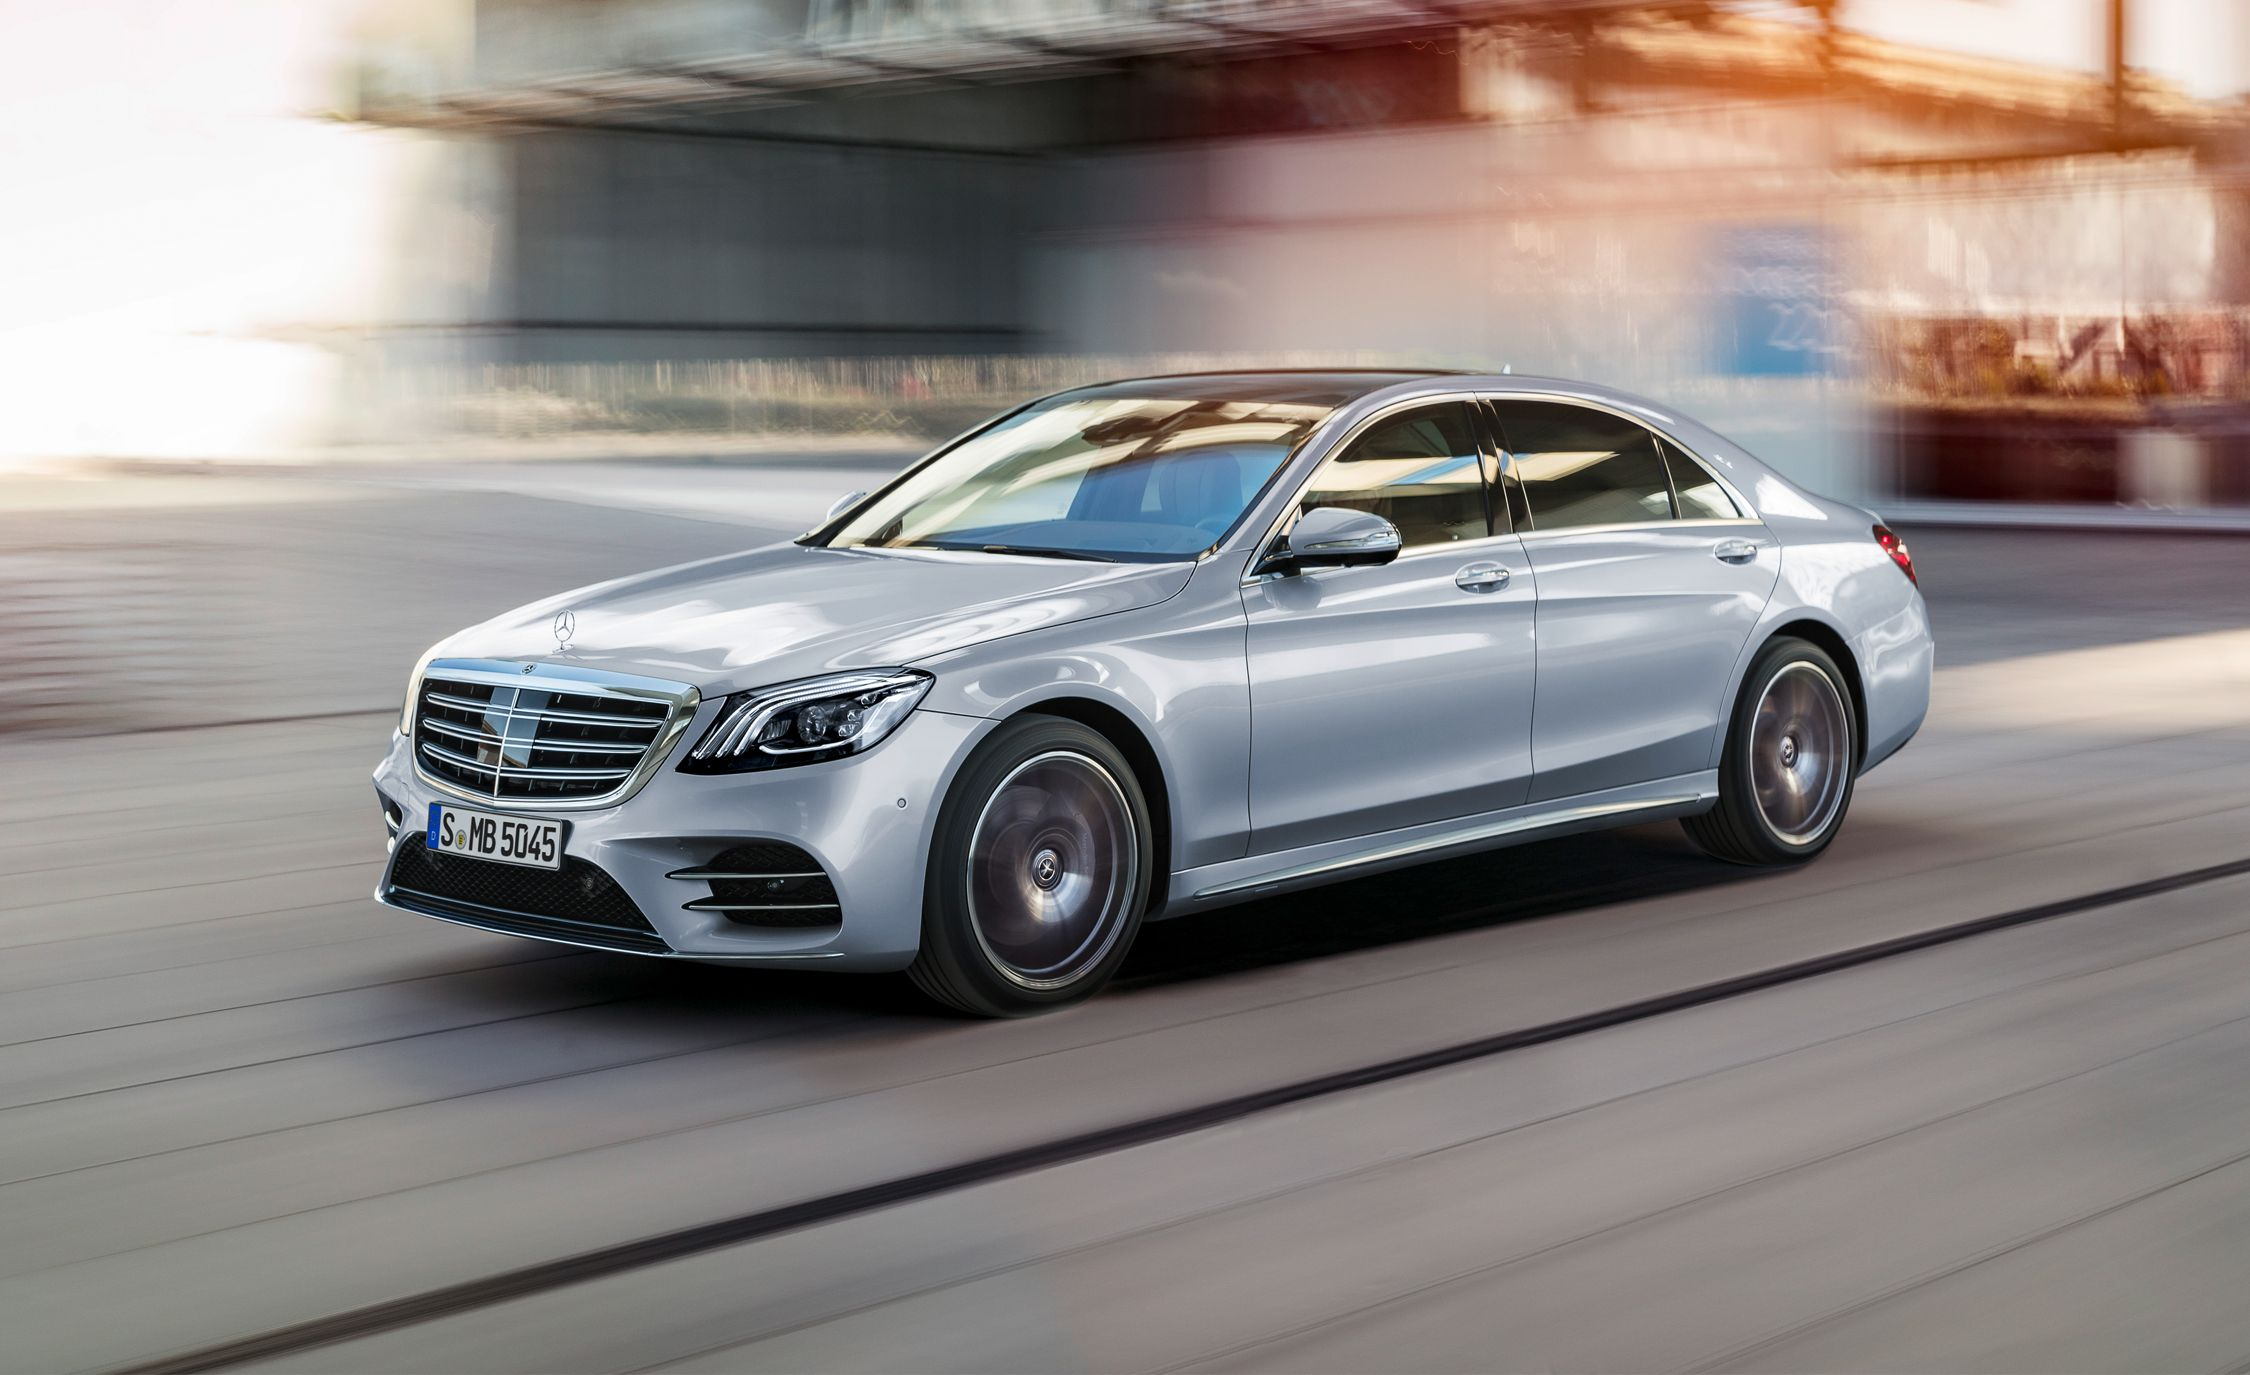 2018 Mercedes Benz S Cl Sedan Lineup Detailed From Top To Bottom